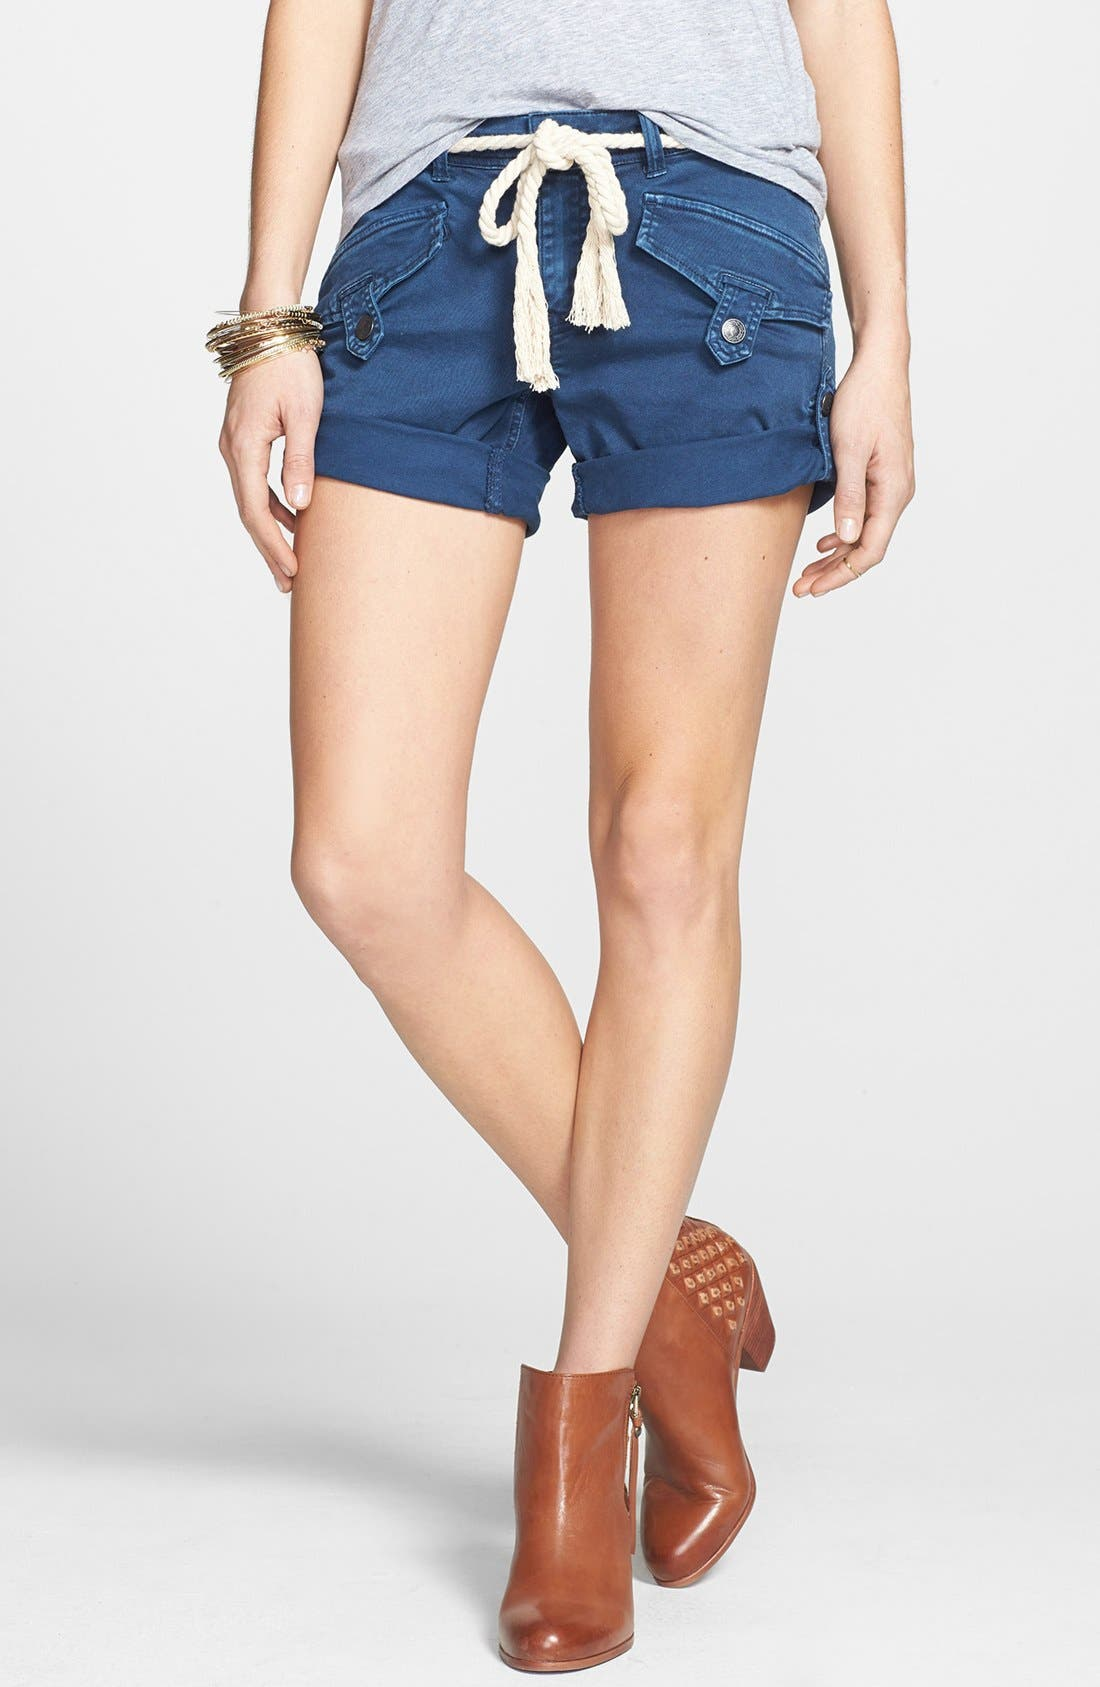 Alternate Image 1 Selected - Free People 'Nautical' Rope Belted Cuffed Shorts